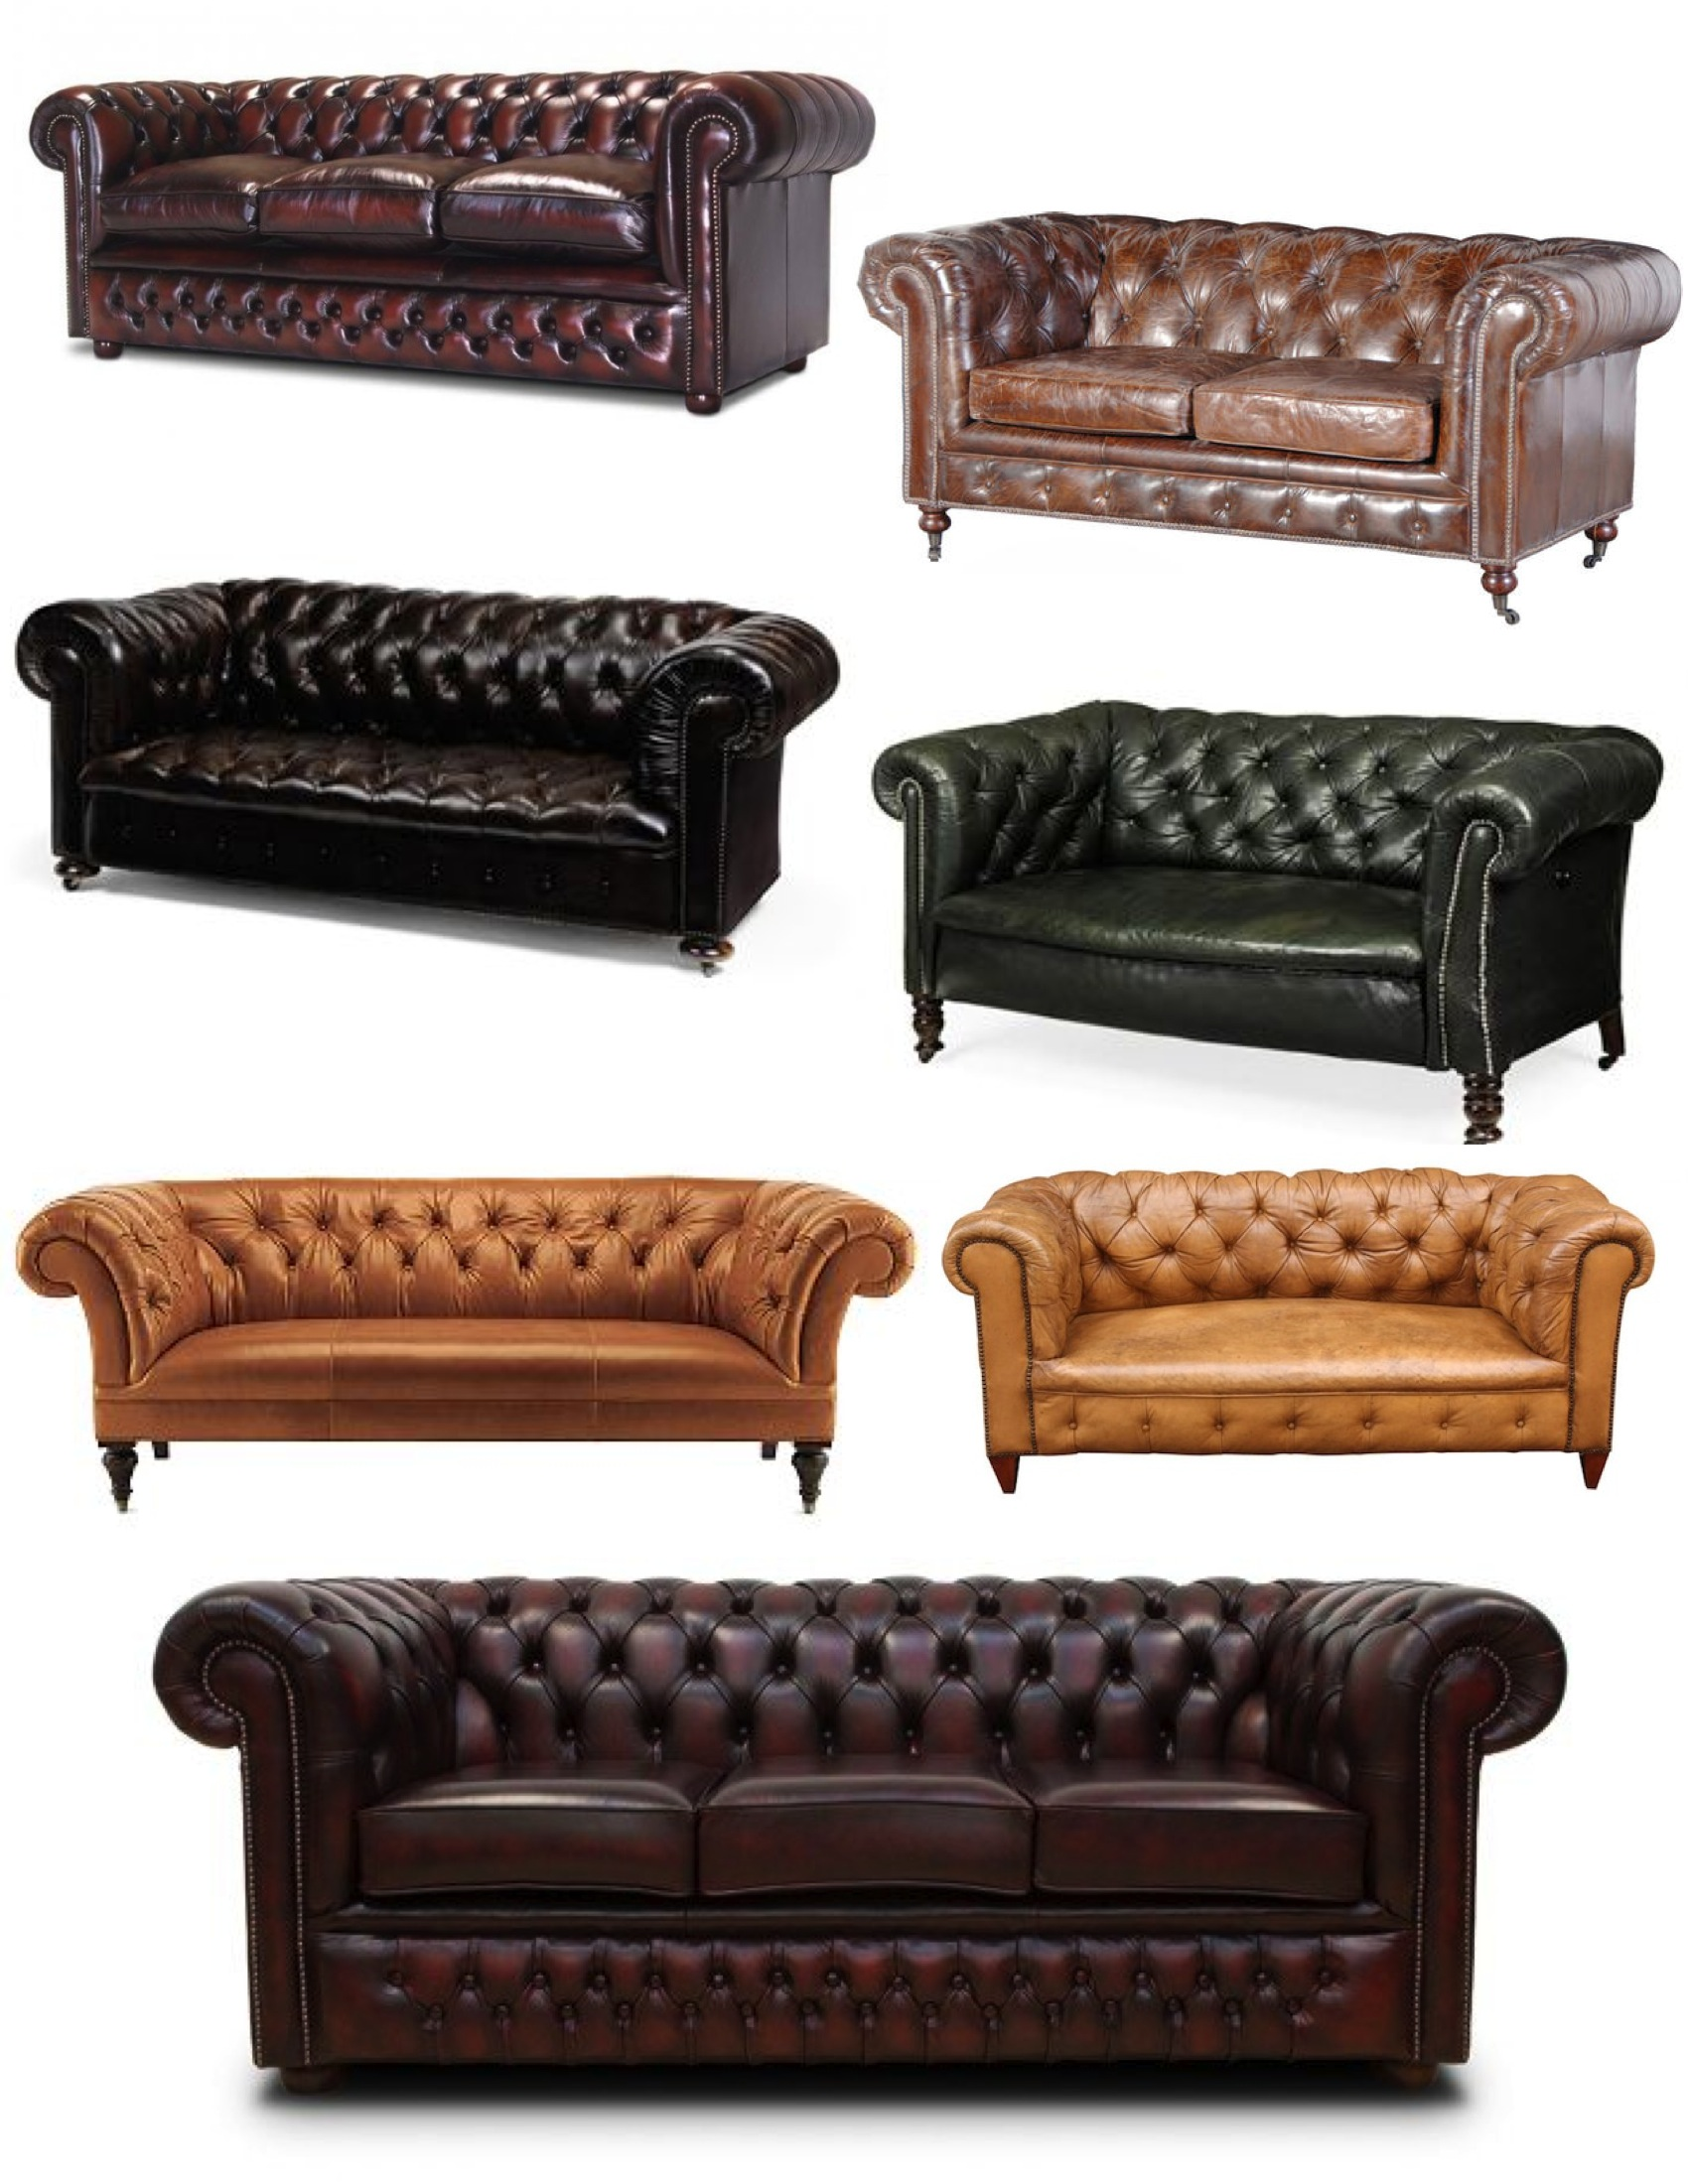 Chesterfield Sofa Japan Legendary Design Style The Chesterfield Couch House Appeal